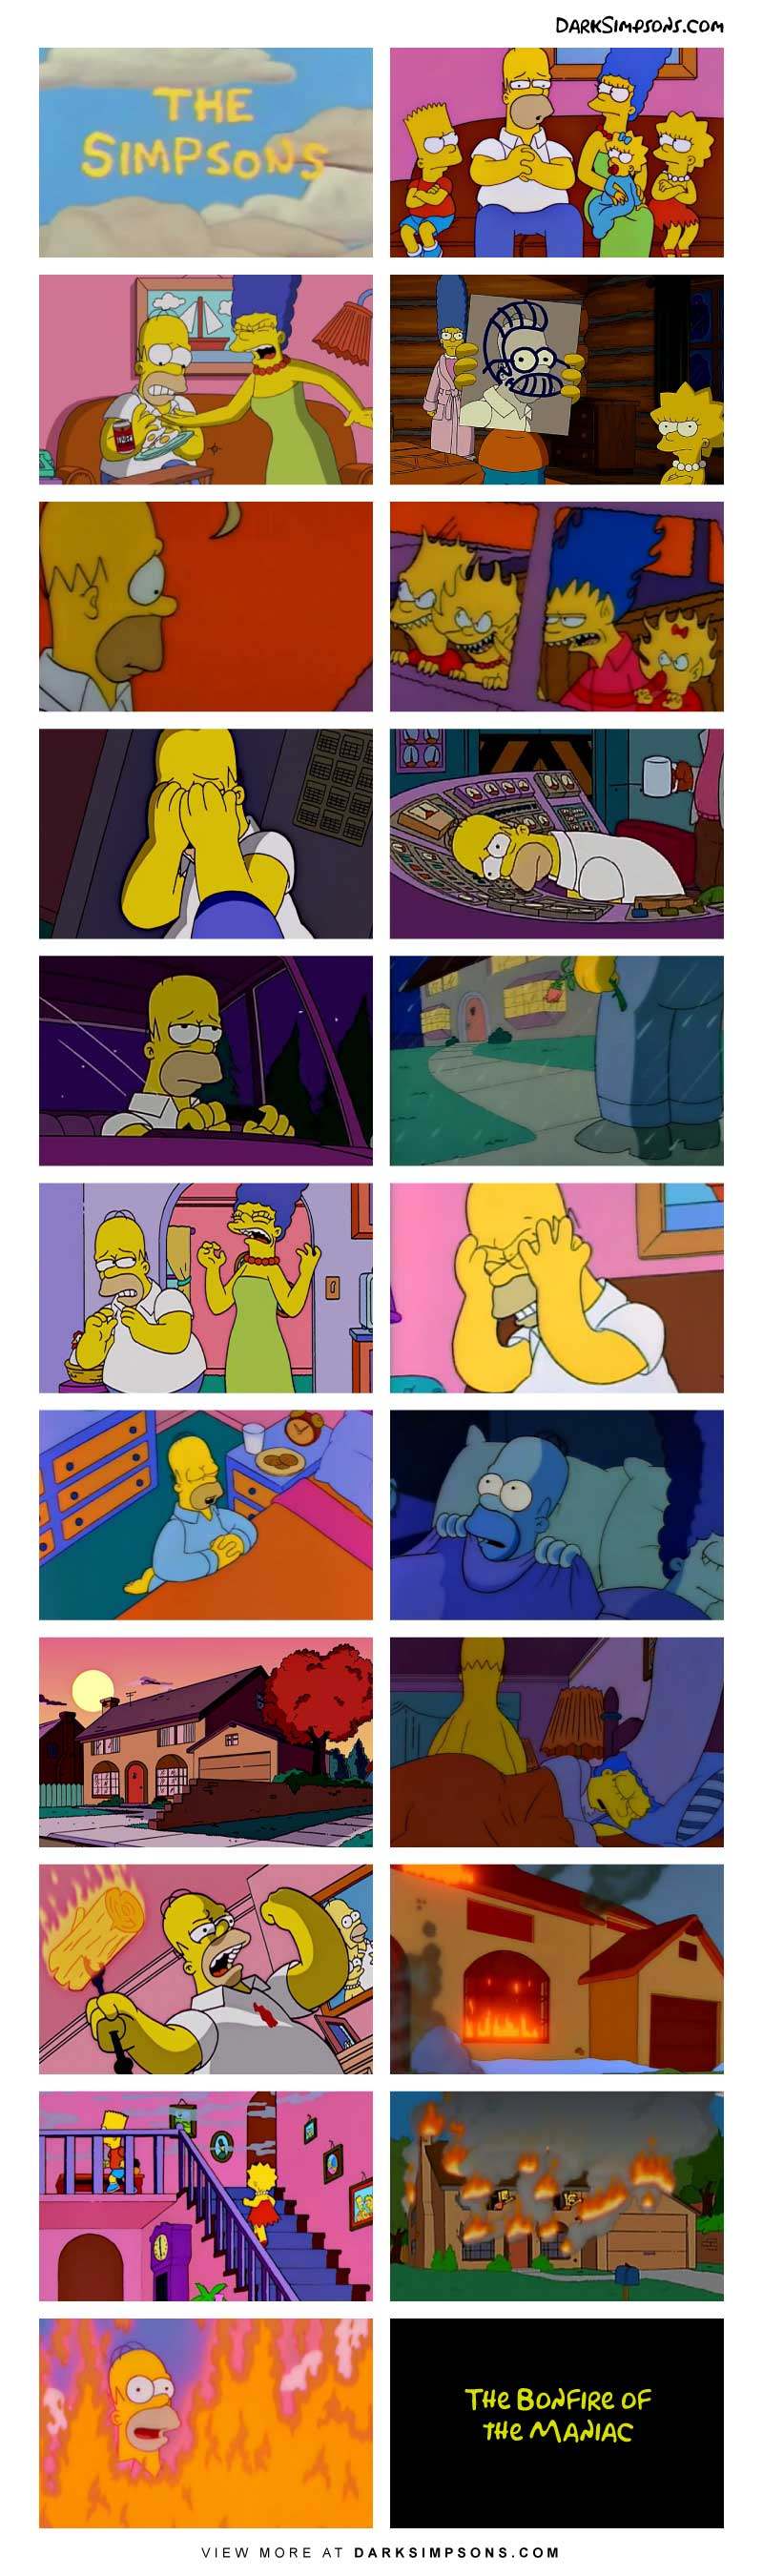 Homer has been psychologically tormented by his family for years, he dreads going home everyday and he can't take it anymore.